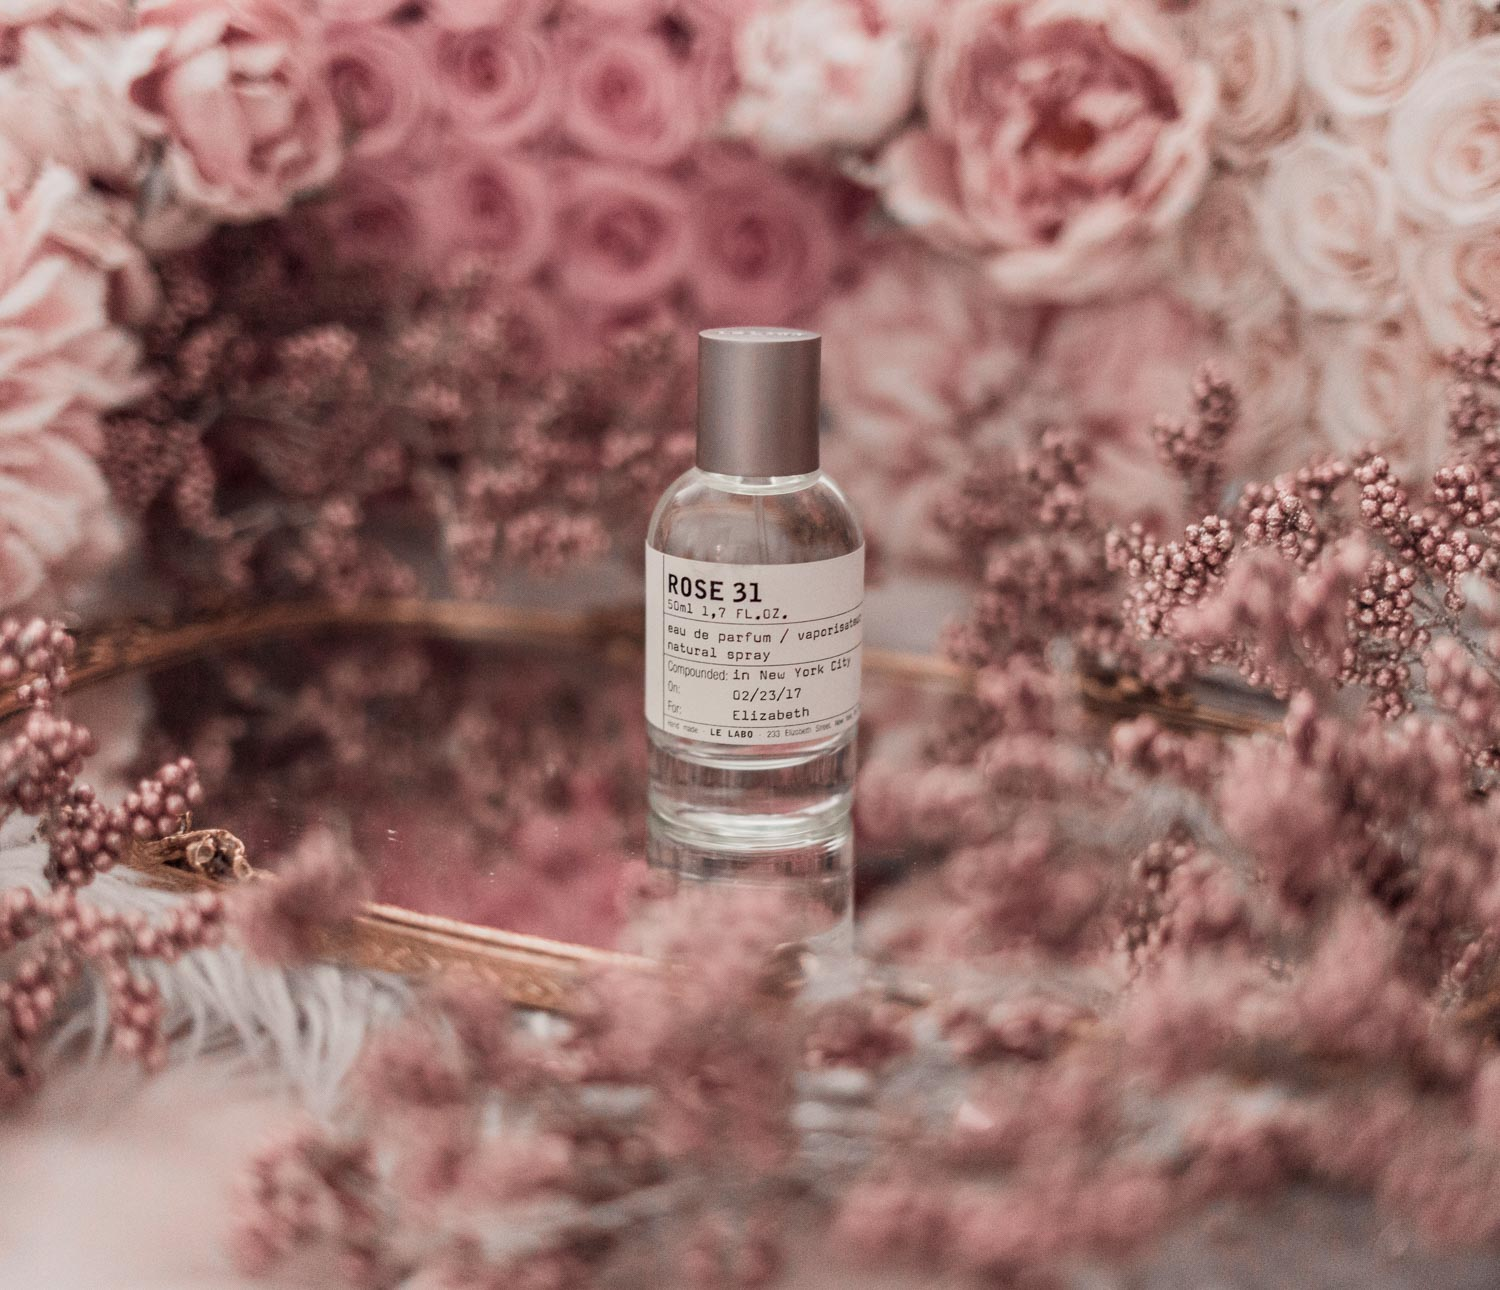 Feminine fashion blogger Elizabeth Hugen of Lizzie in Lace shares the best feminine perfumes and her girly fragrance collection including Le Labo Rose 31